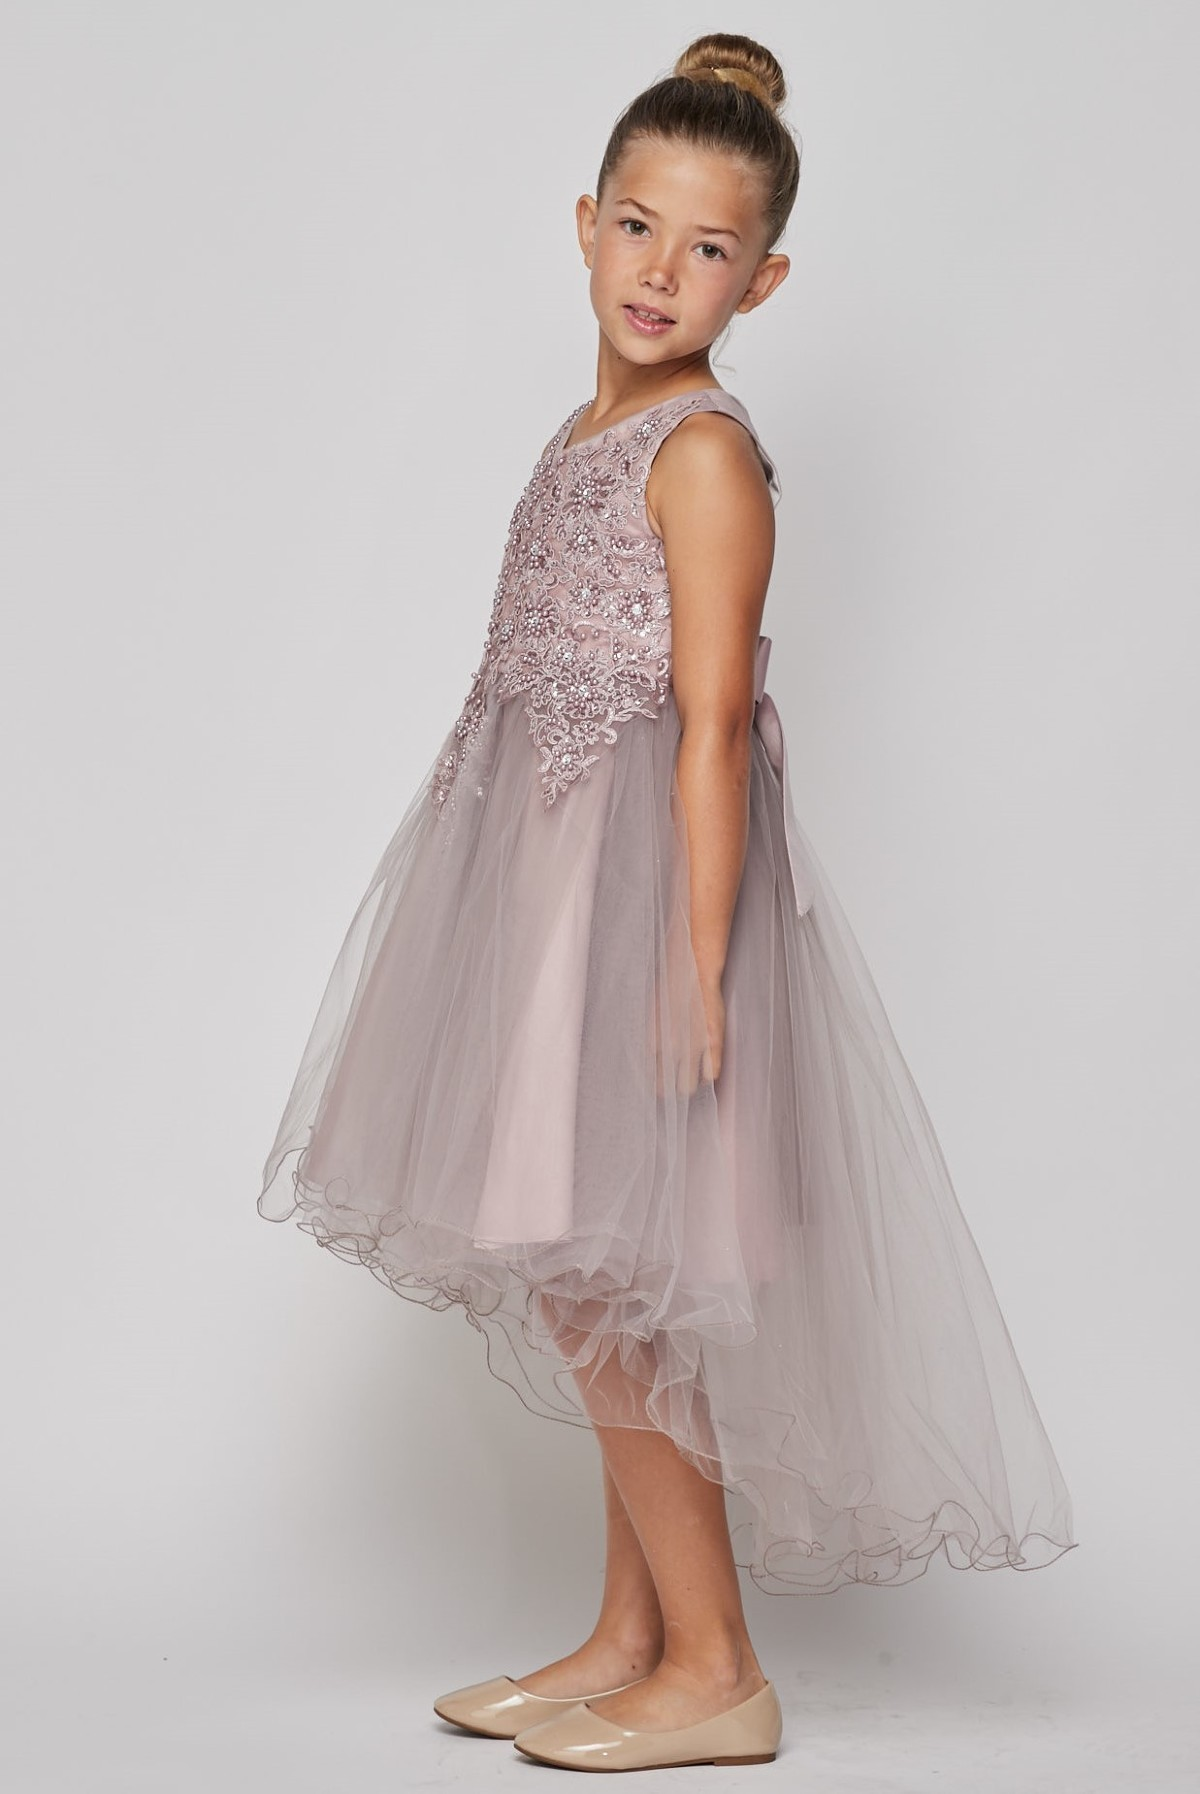 kids pageant dresses $70 to $80